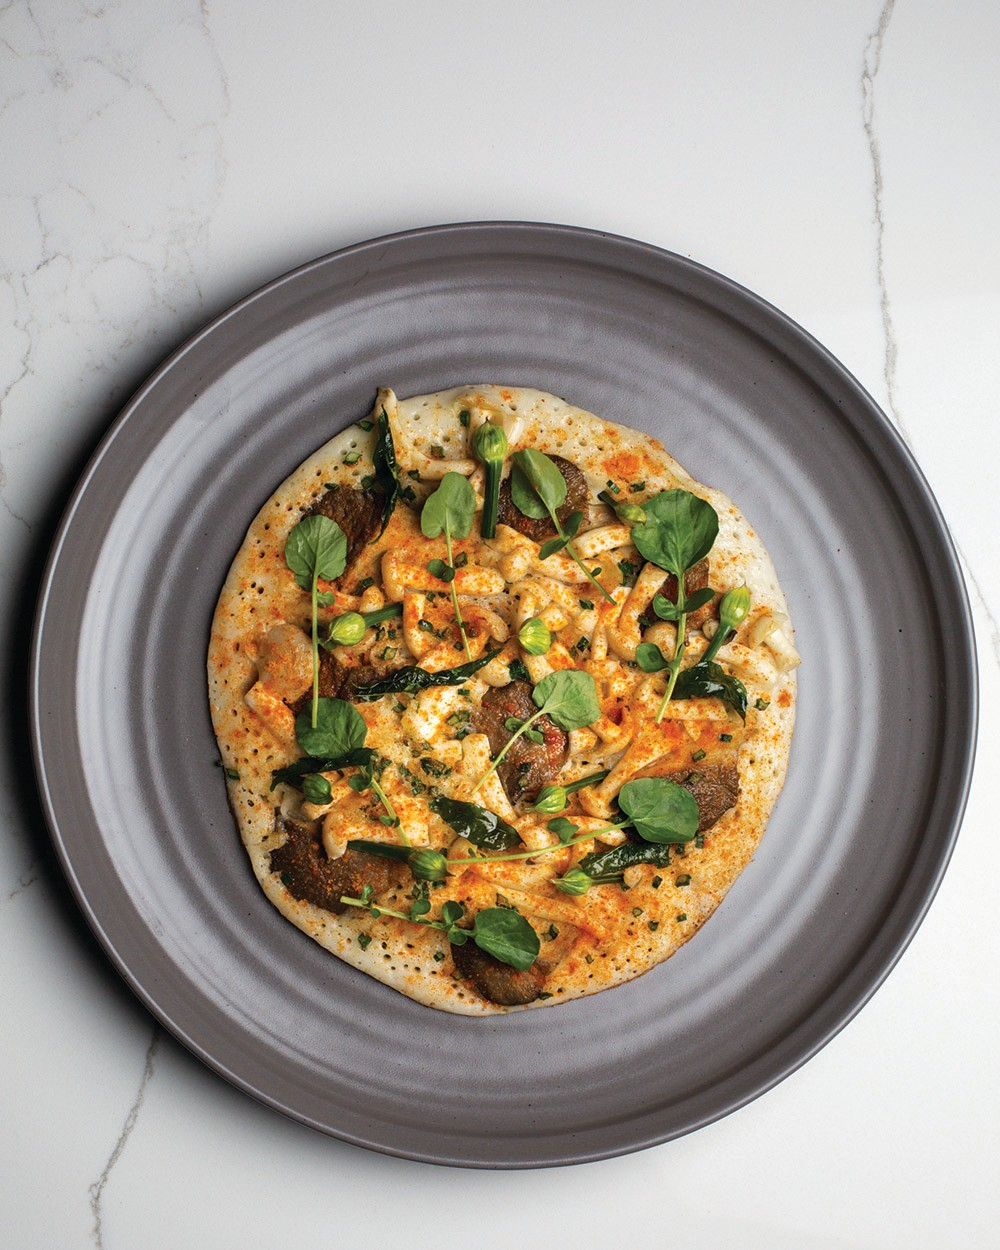 A mushroom uttapam with both wild and cultivated mushrooms from Rasa